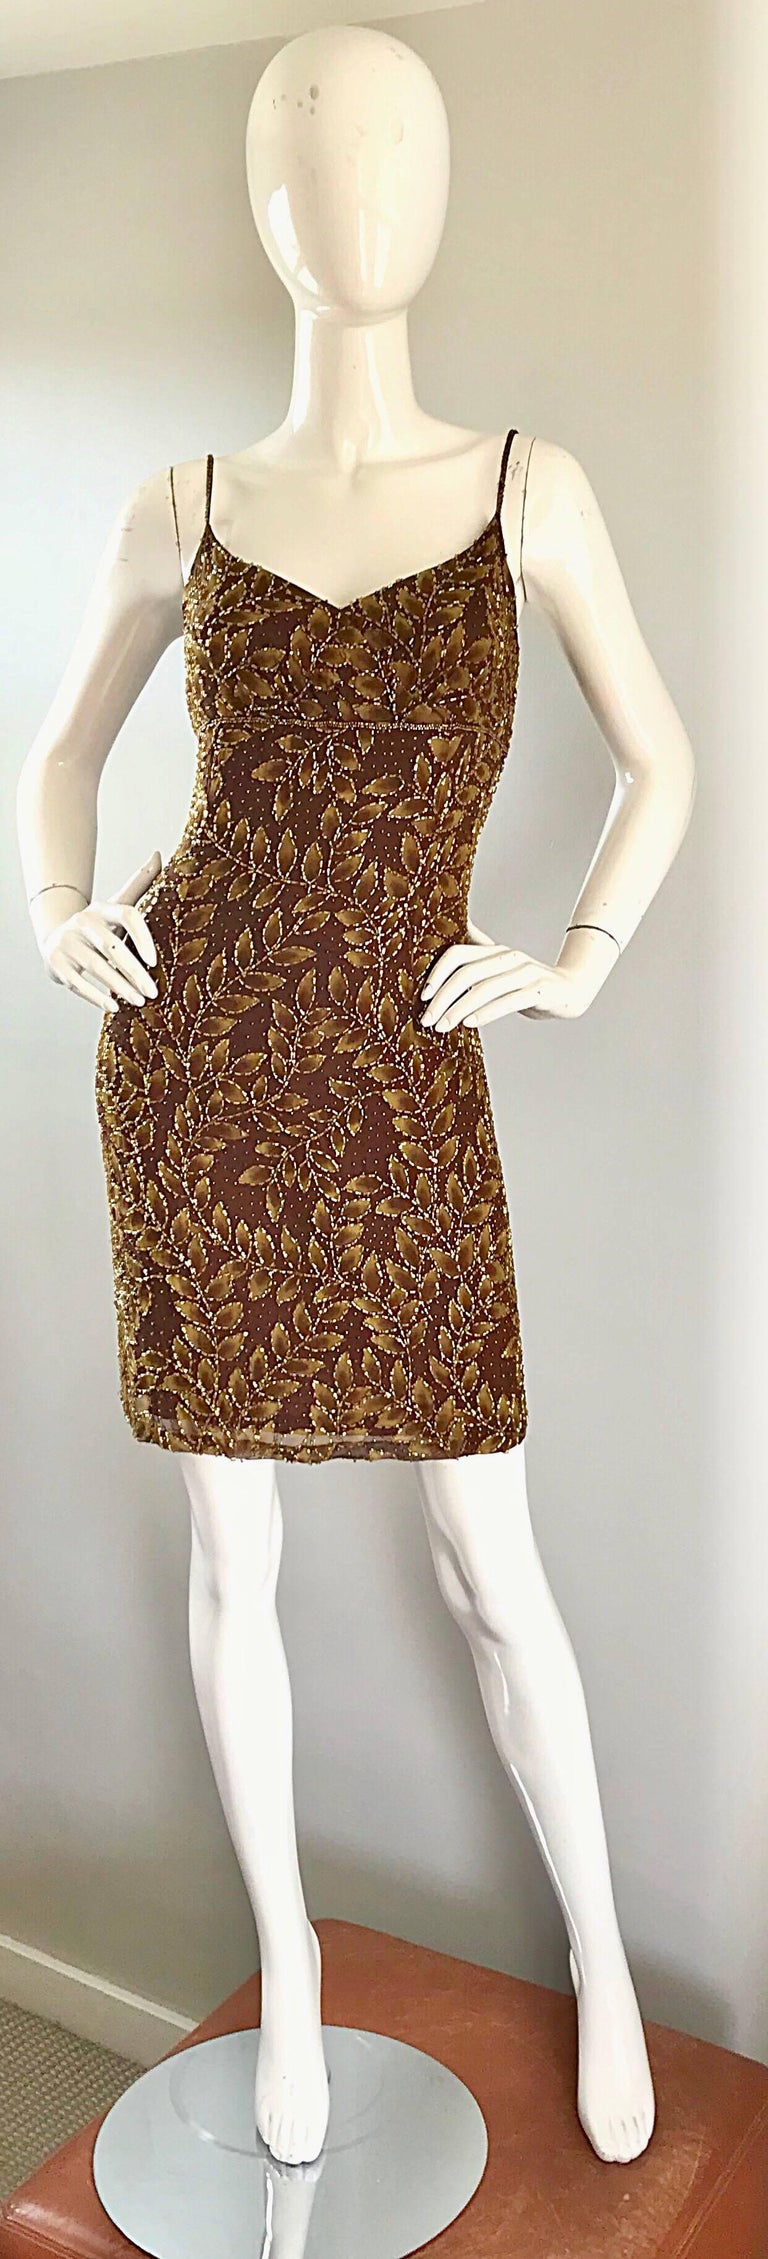 1990s Oleg Cassini Size 10 Brown and Gold Beaded Vintage 90s Silk Dress 2